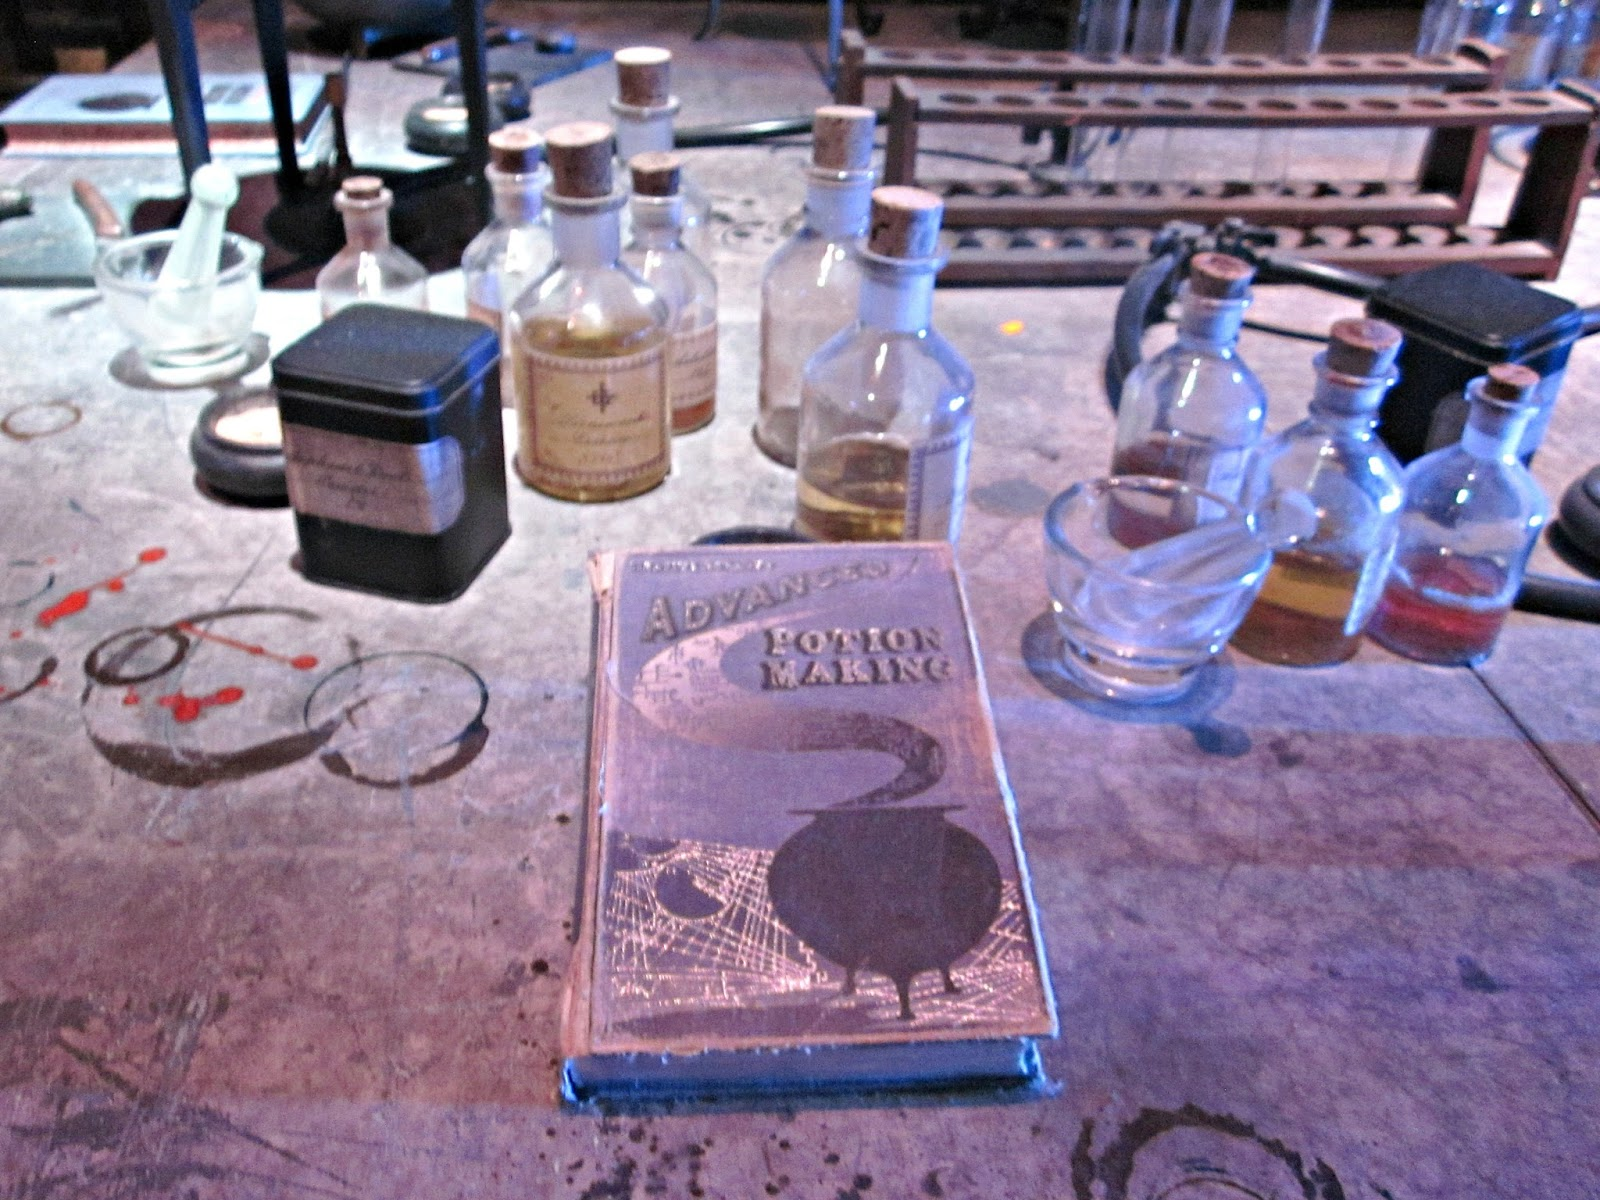 Advcanced Potion Making book at The Making Of Harry Potter Warner Brothers Studio Tour